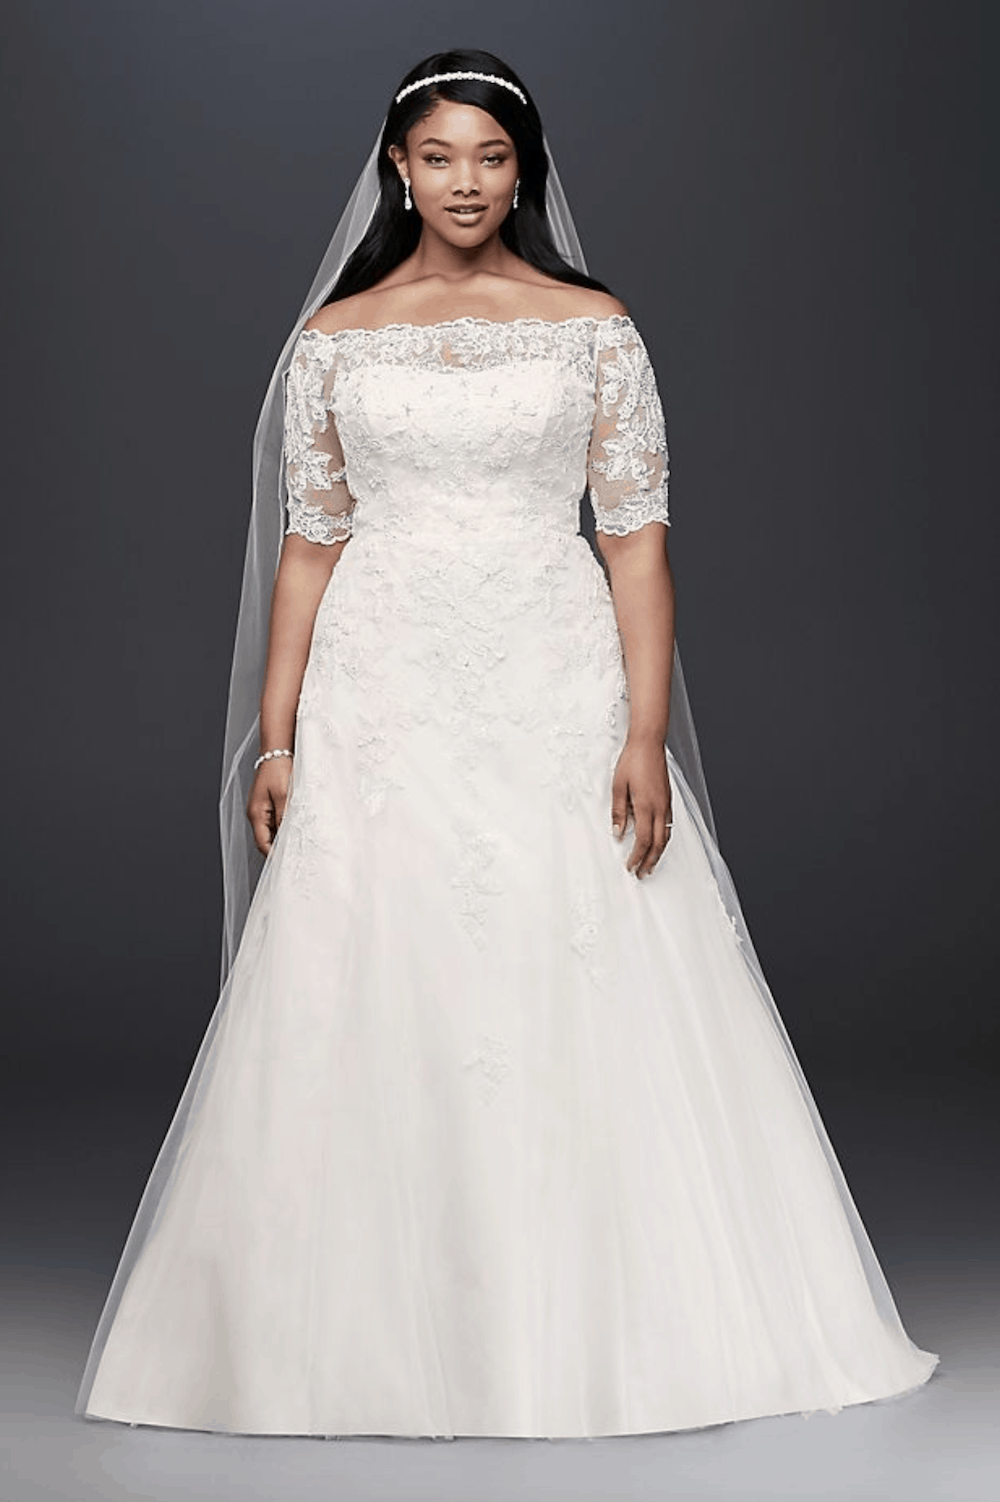 Plus Size Bridal Gowns with Lace Sleeves Jewel 3:4 Sleeve Plus Size Wedding Dress